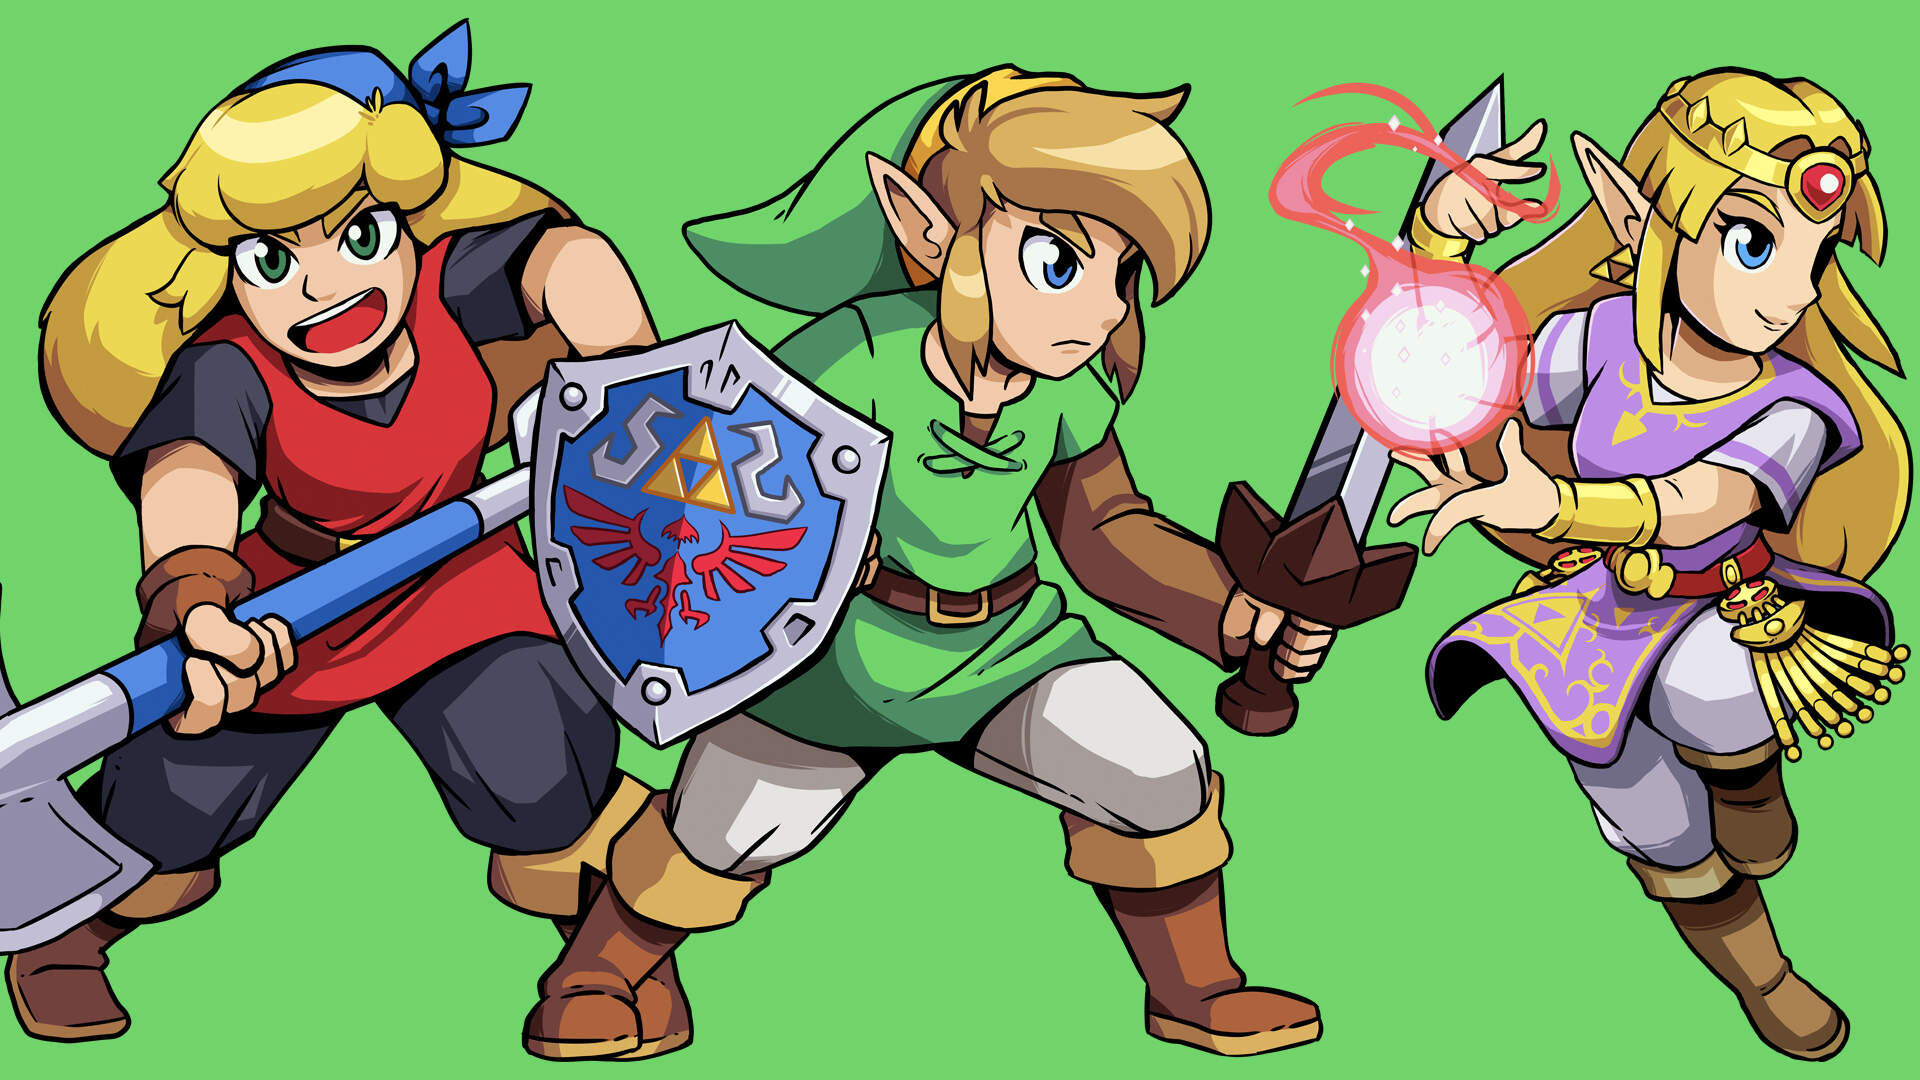 Candence Of Hyrule Castle Statue Puzzle How To Solve The Hyrule Castle Puzzle In Cadence Of Hyrule Usgamer